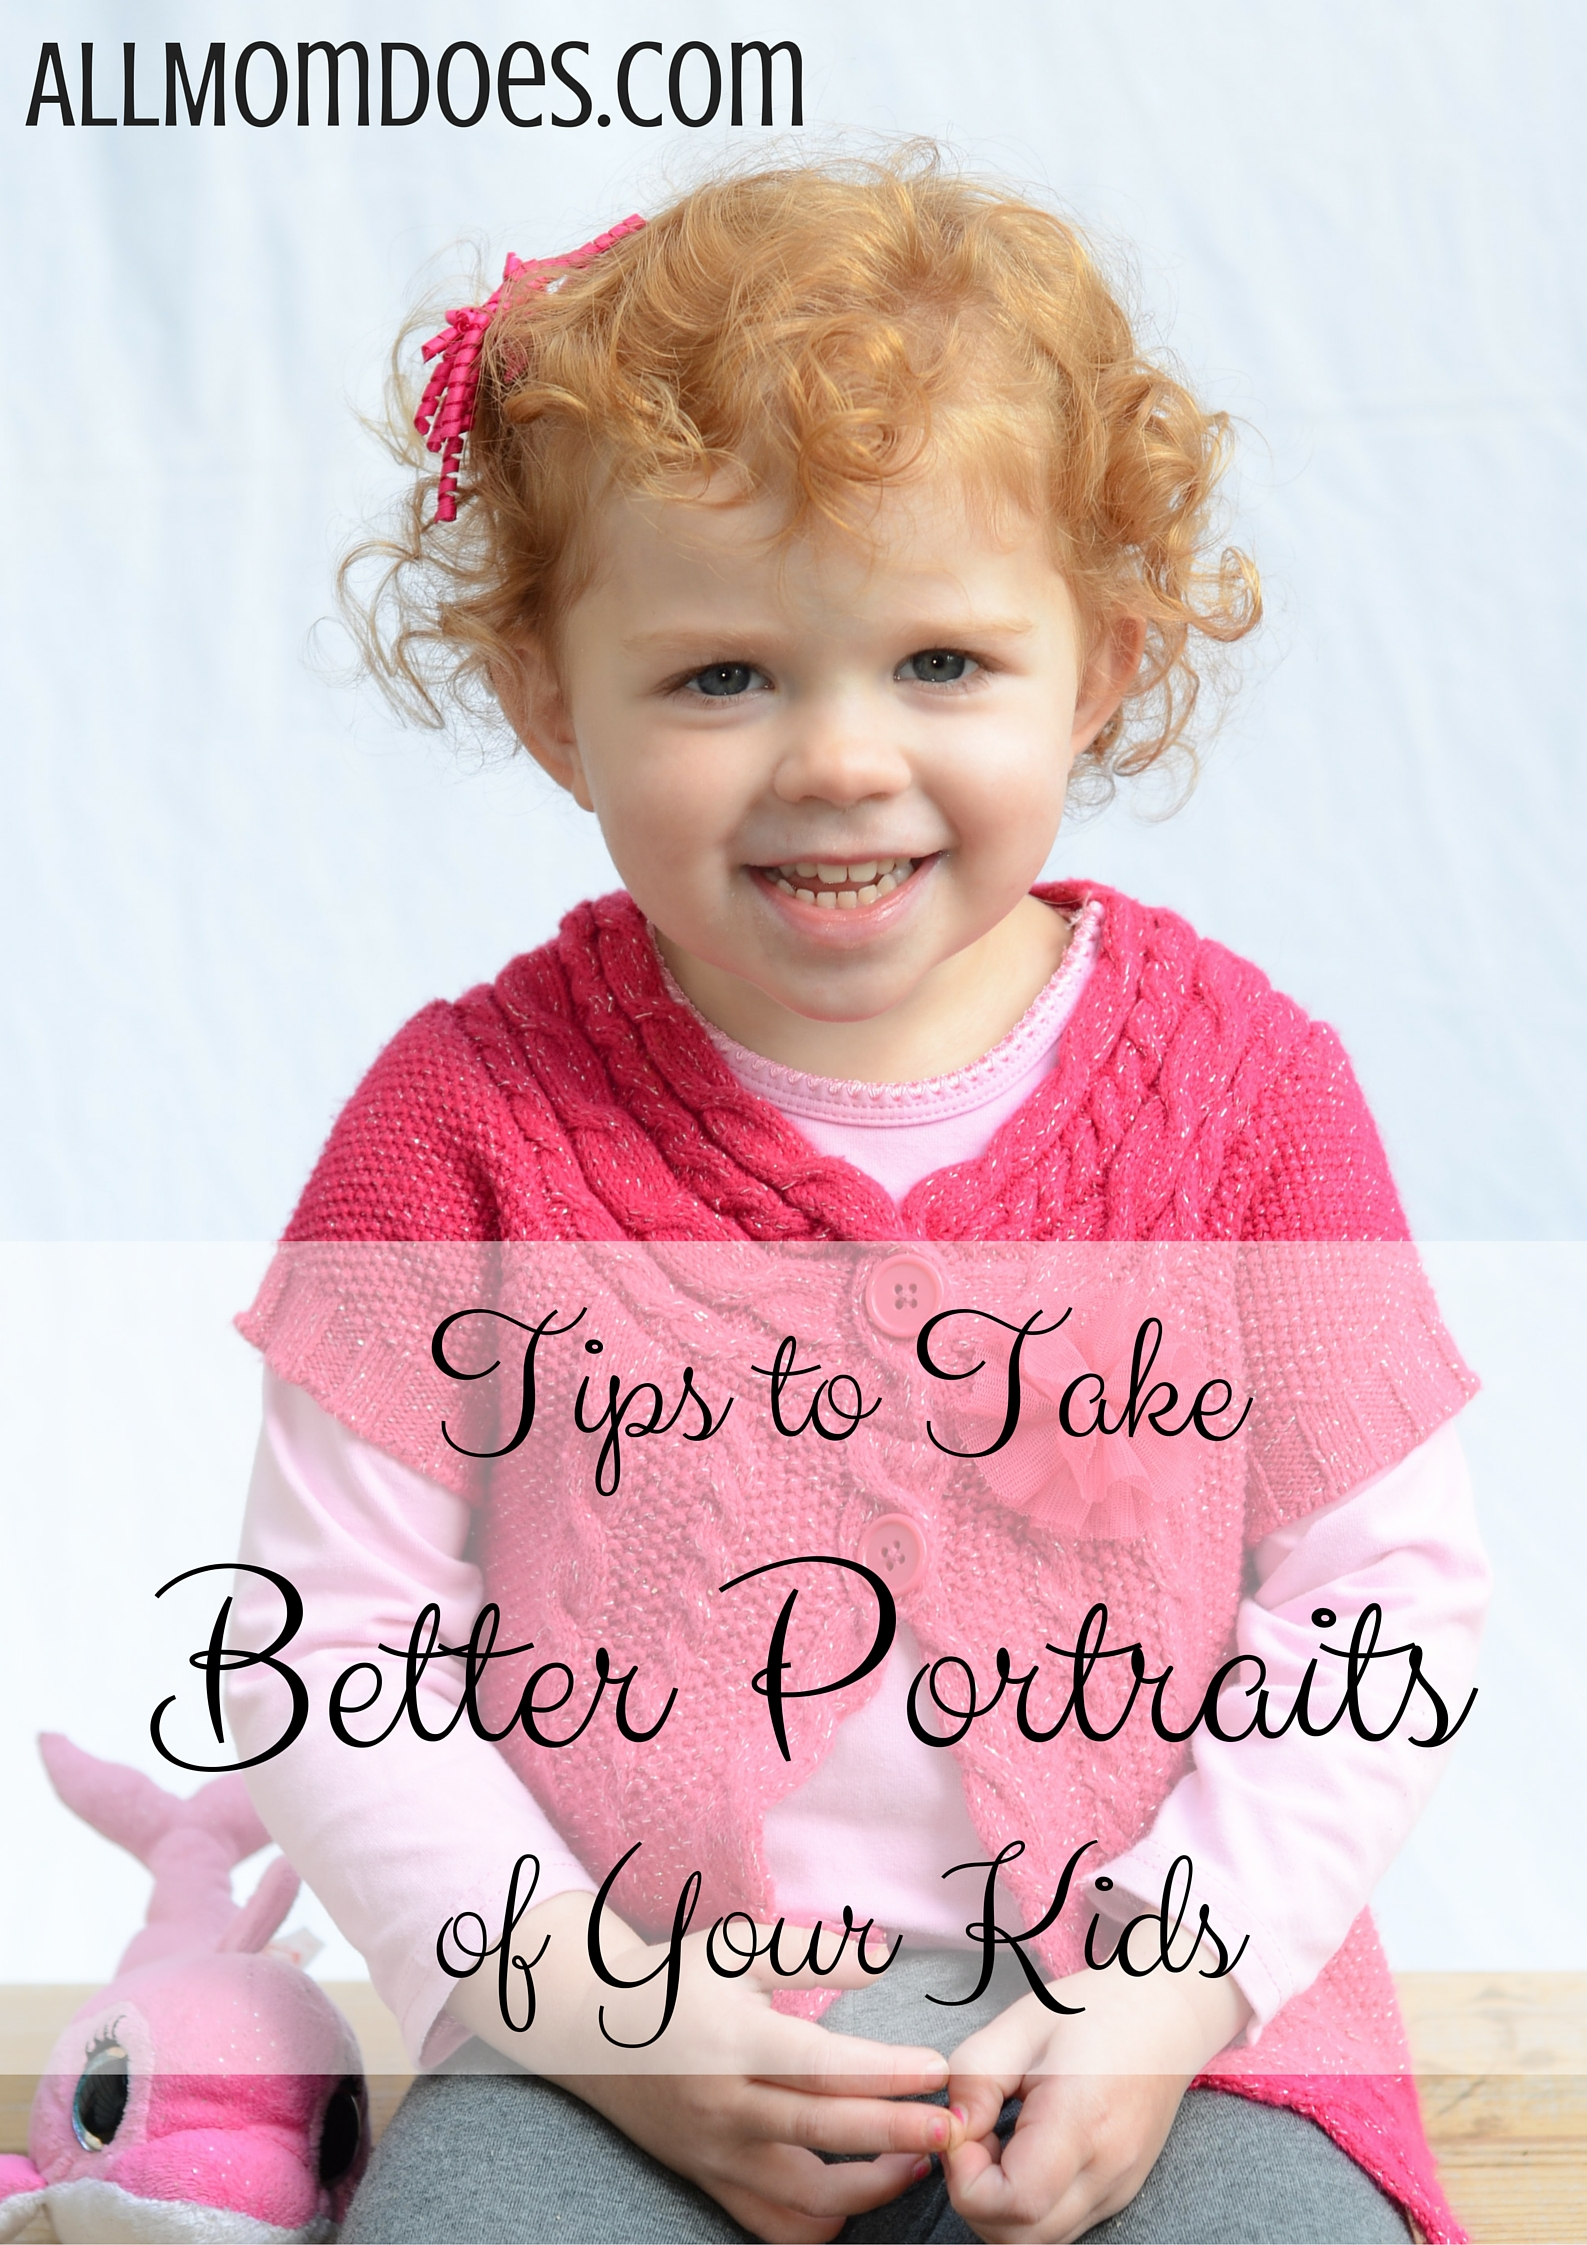 Tips to Take Better Portraits of Your Kids